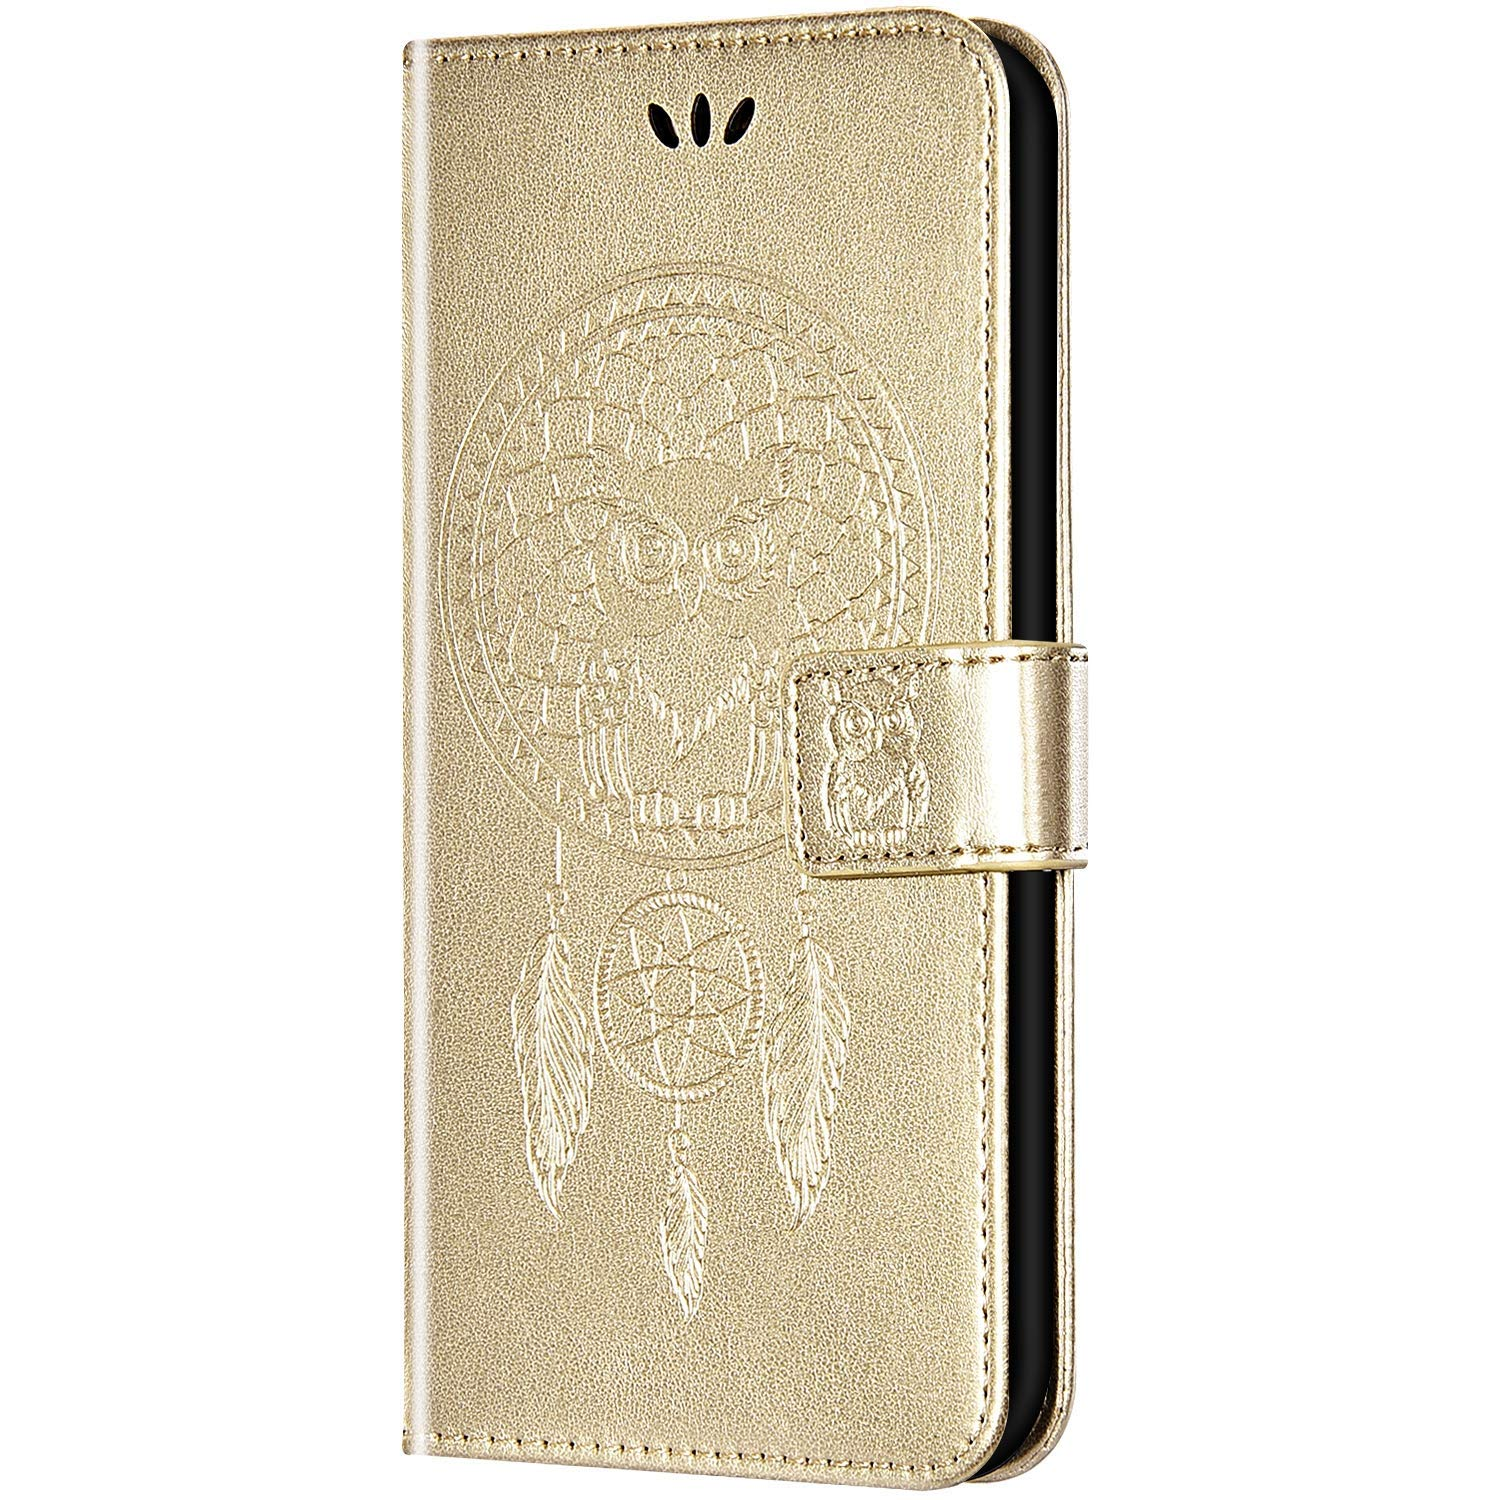 Case for Galaxy S6 Edge Flip Case Ultra Slim PU Leather Wallet with Card Holder/Slot and Magnetic Closure Shockproof Cartoon Animal Owl Embossed Protective Cover for Galaxy S6 Edge,Gold by ikasus